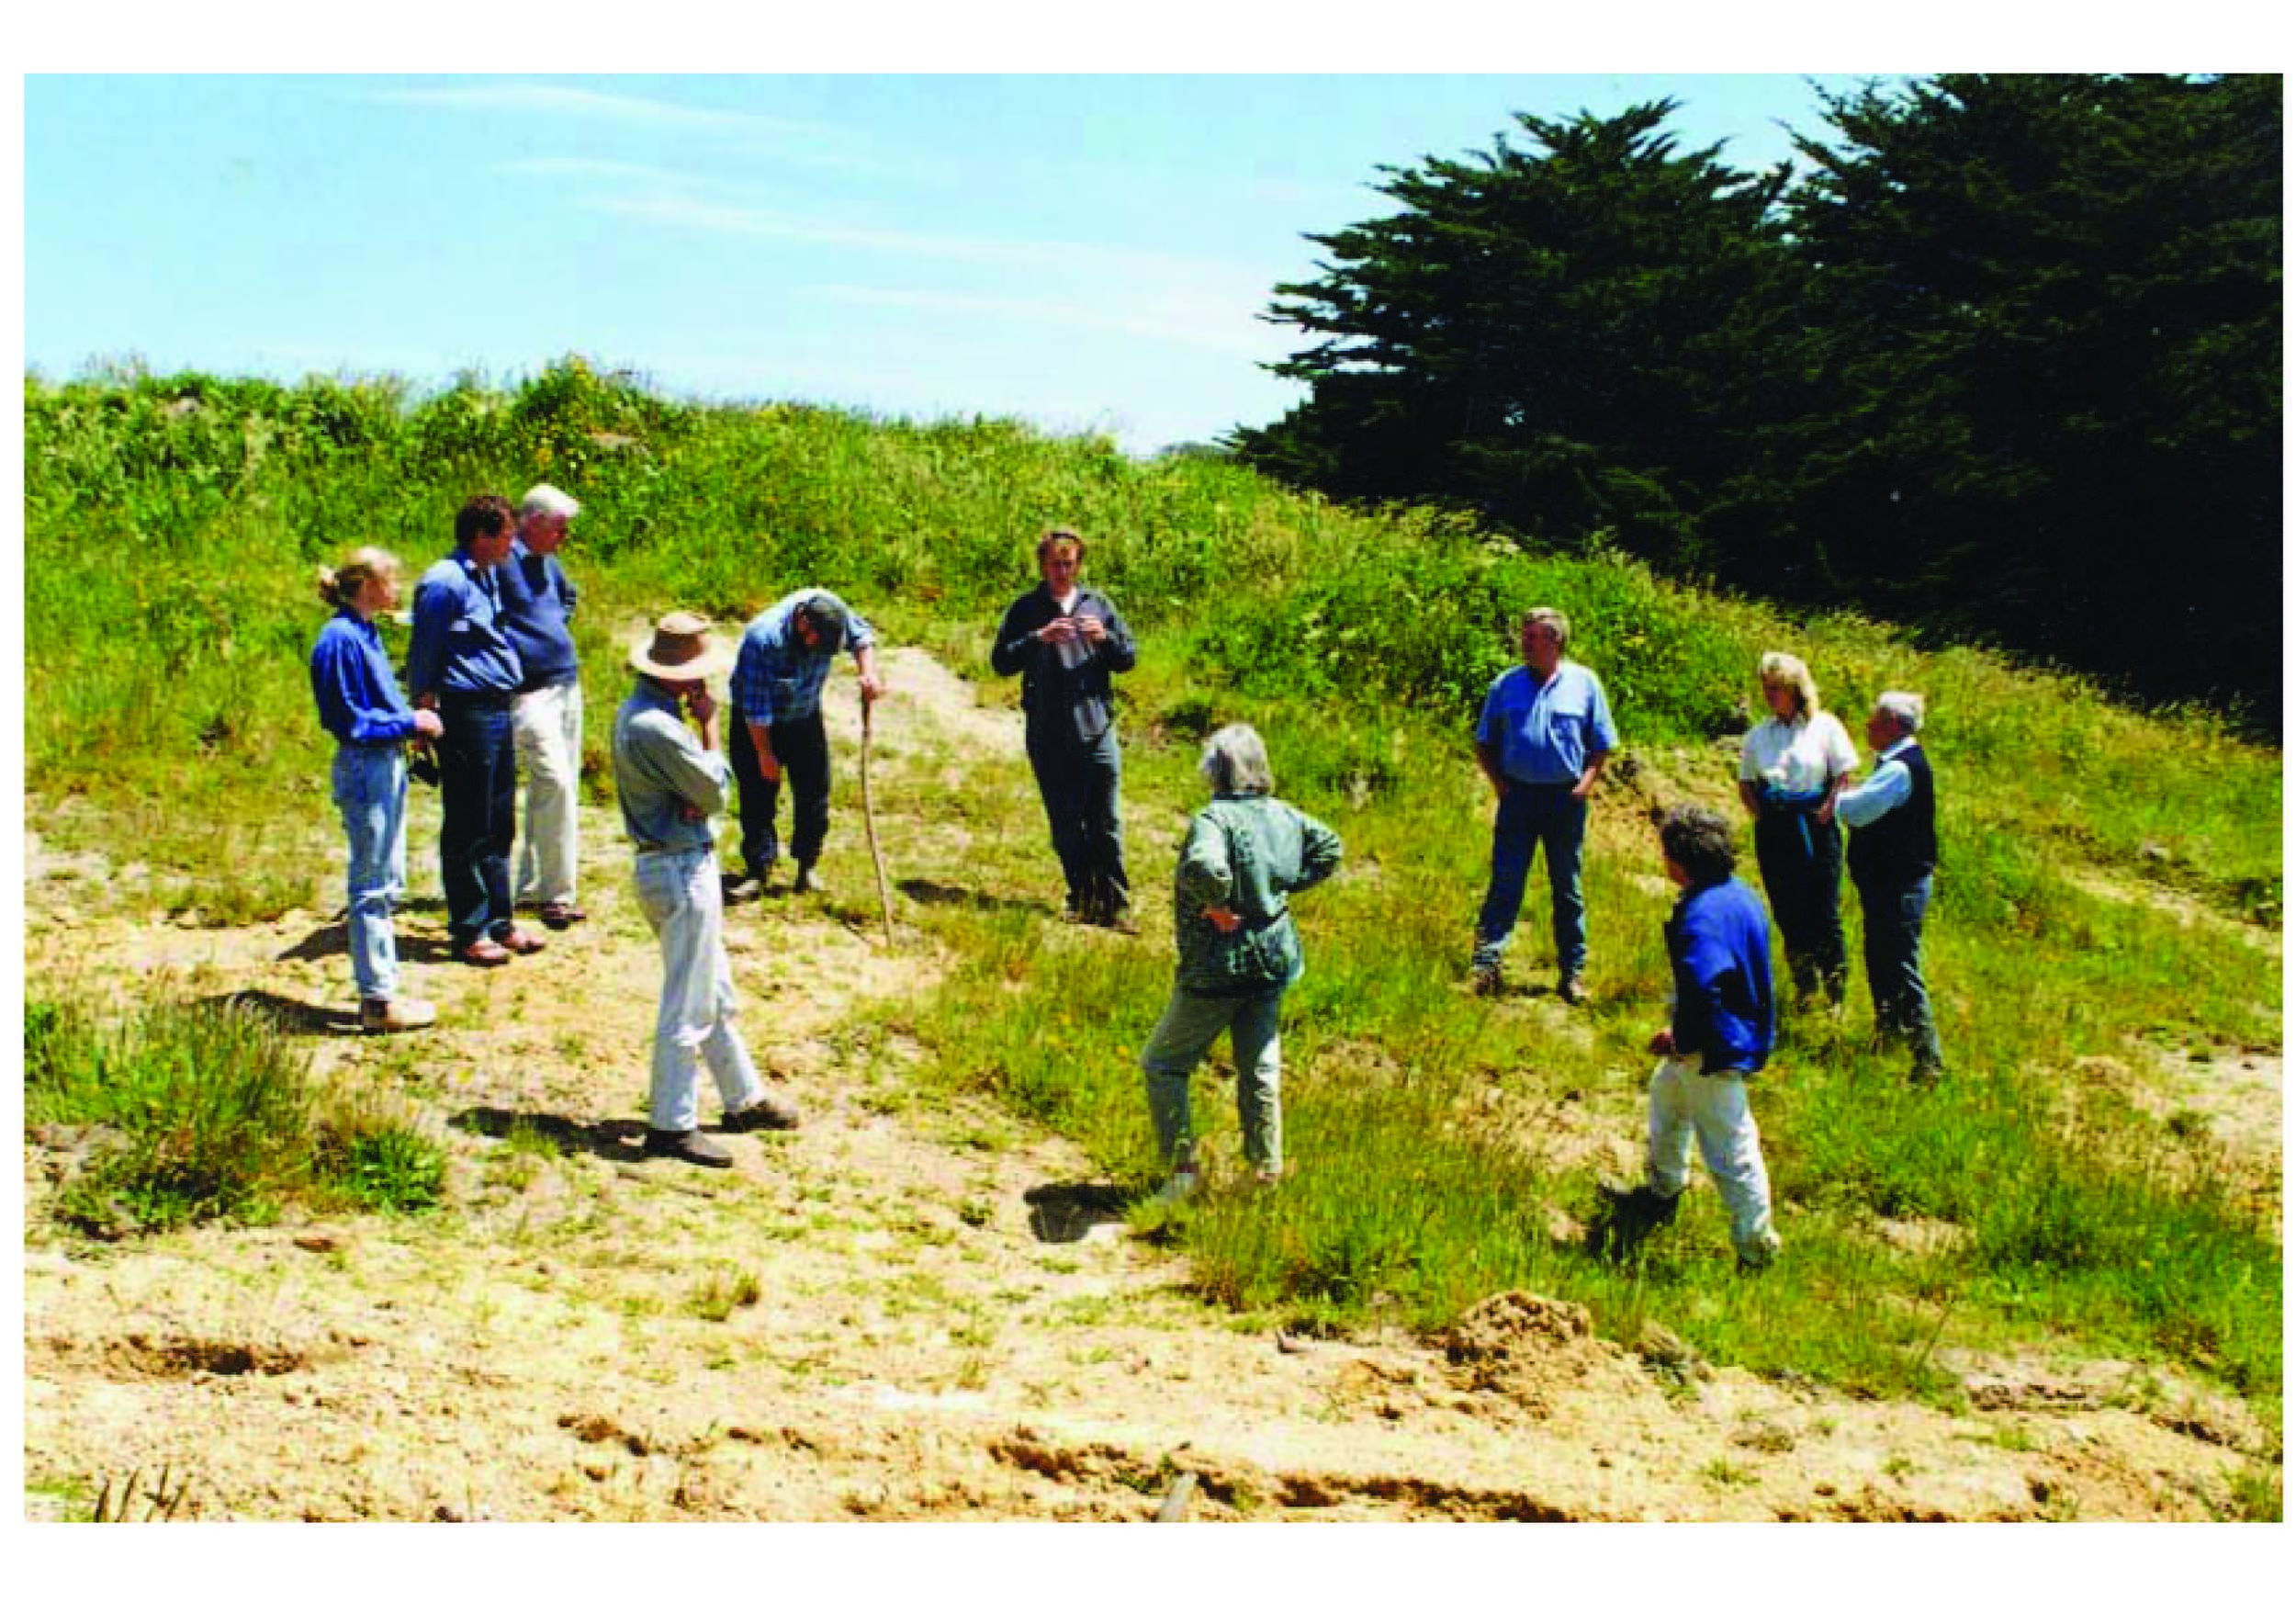 Southern Otway Catchment Management Plan, Landcare Field Inspection - Apollo Bay Area, Victoria